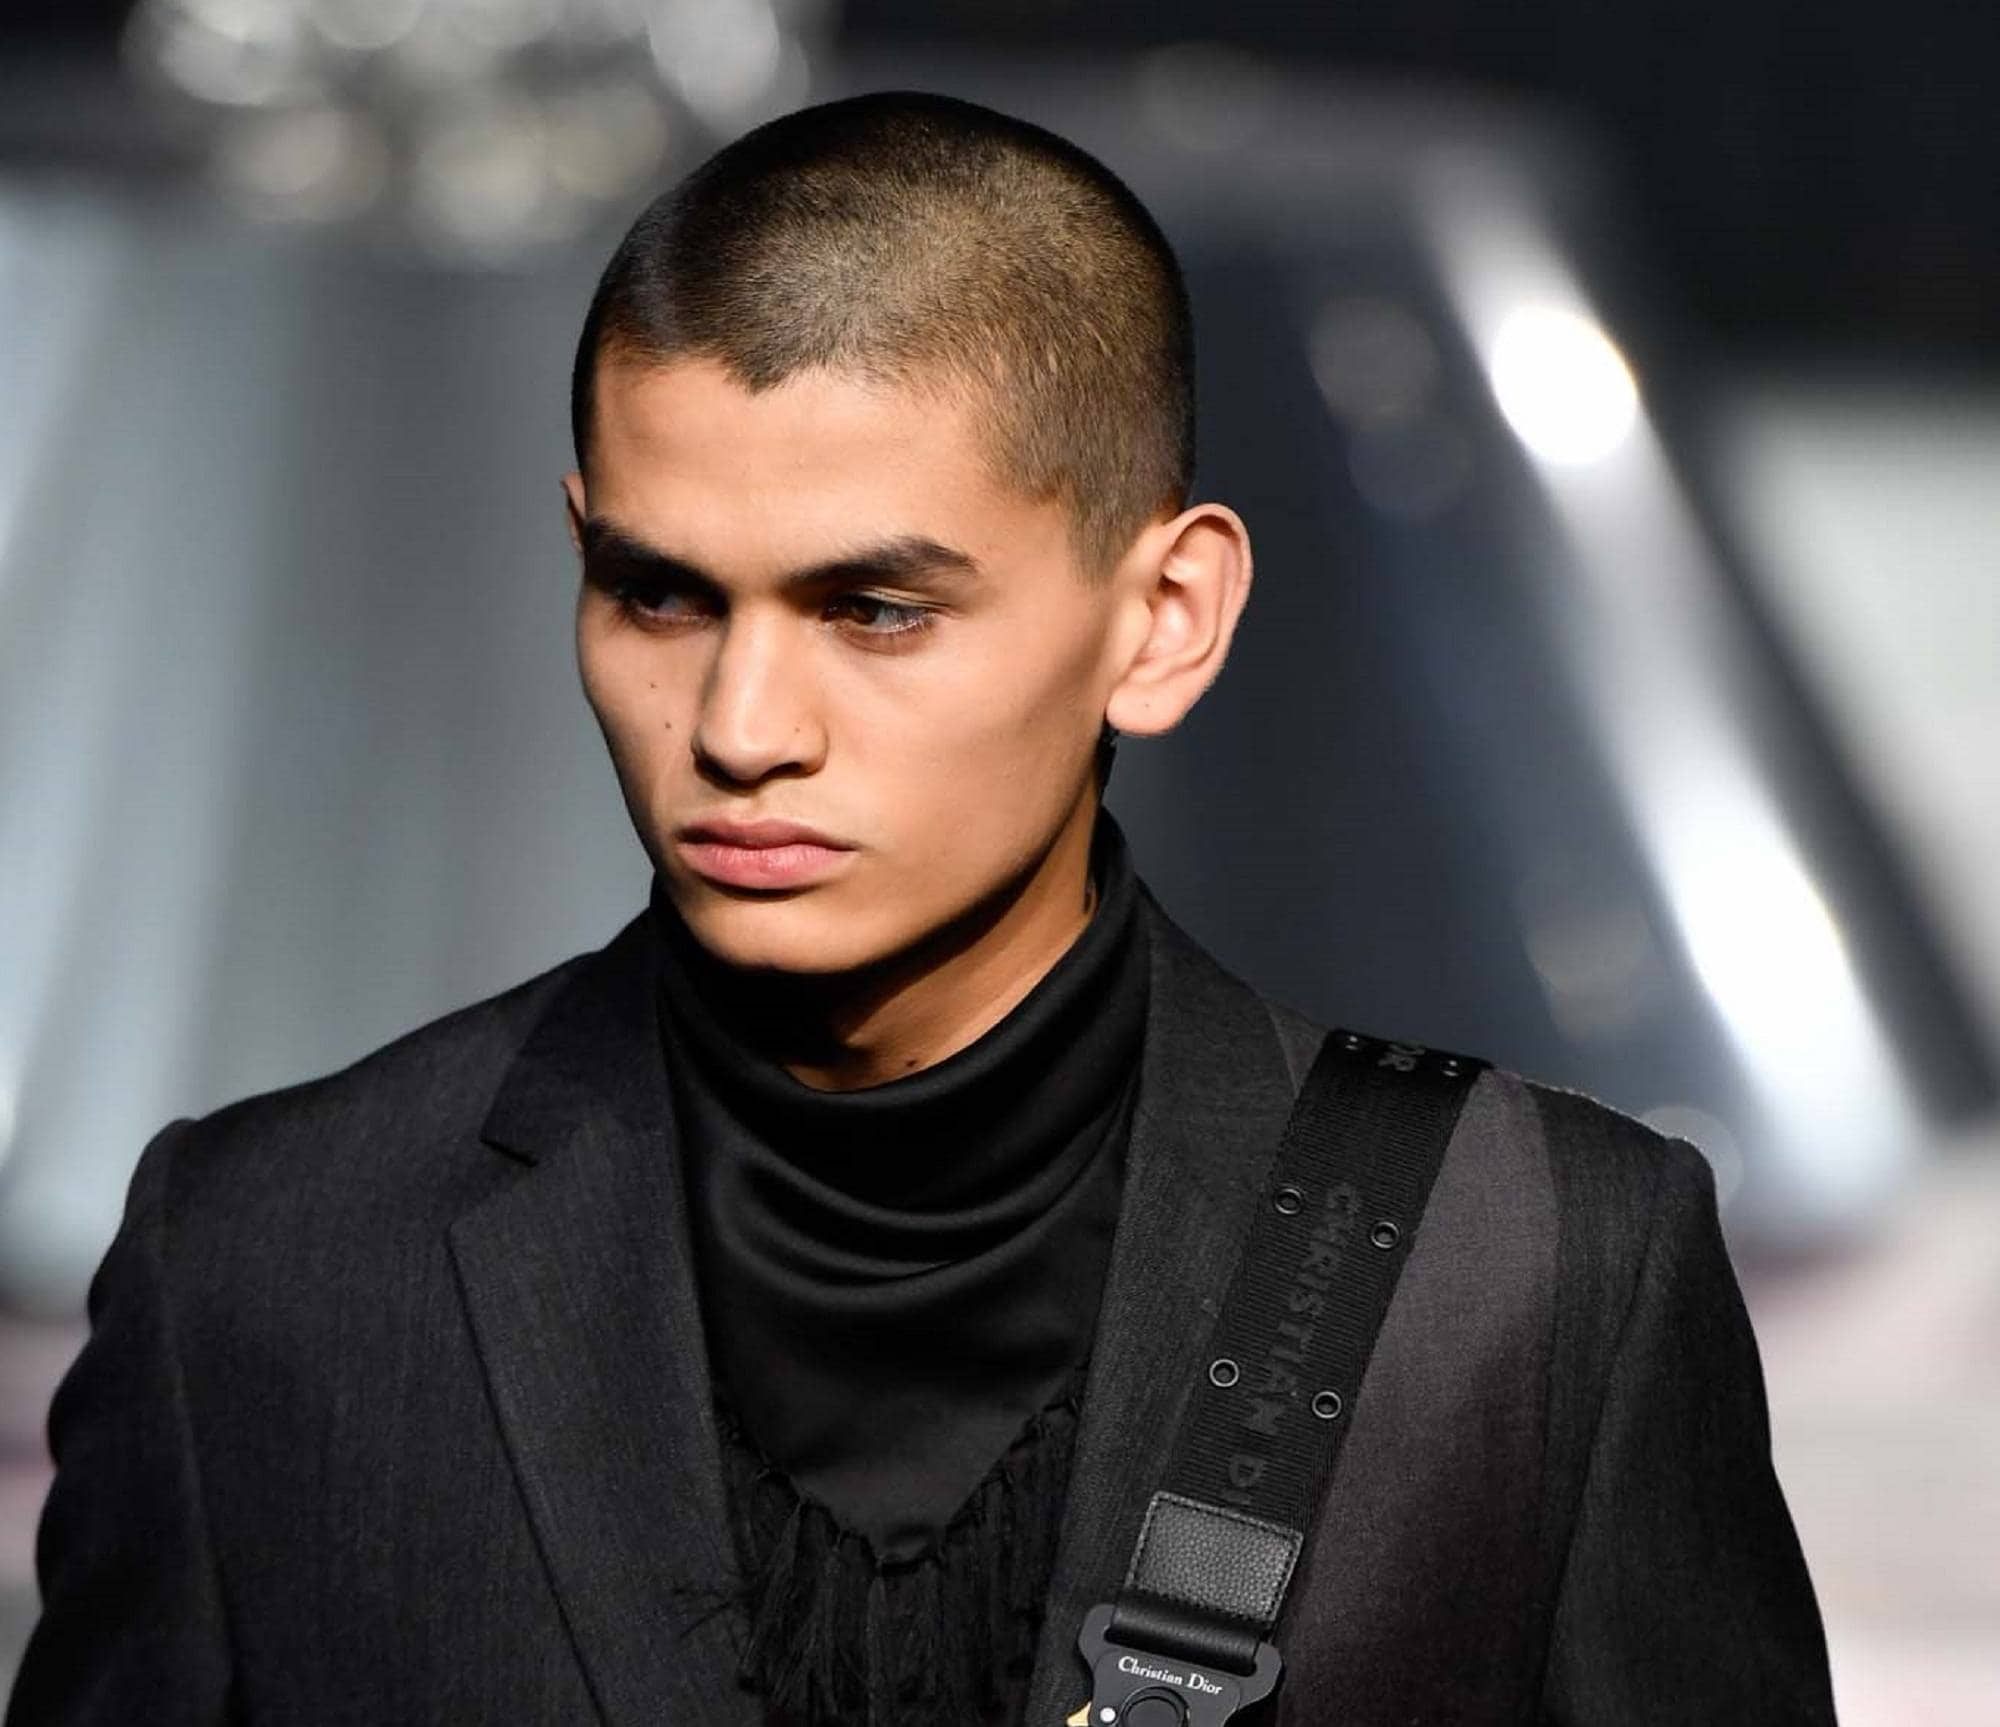 Healthy scalp: Closeup shot of a semi-bald man wearing a black suit on the runway